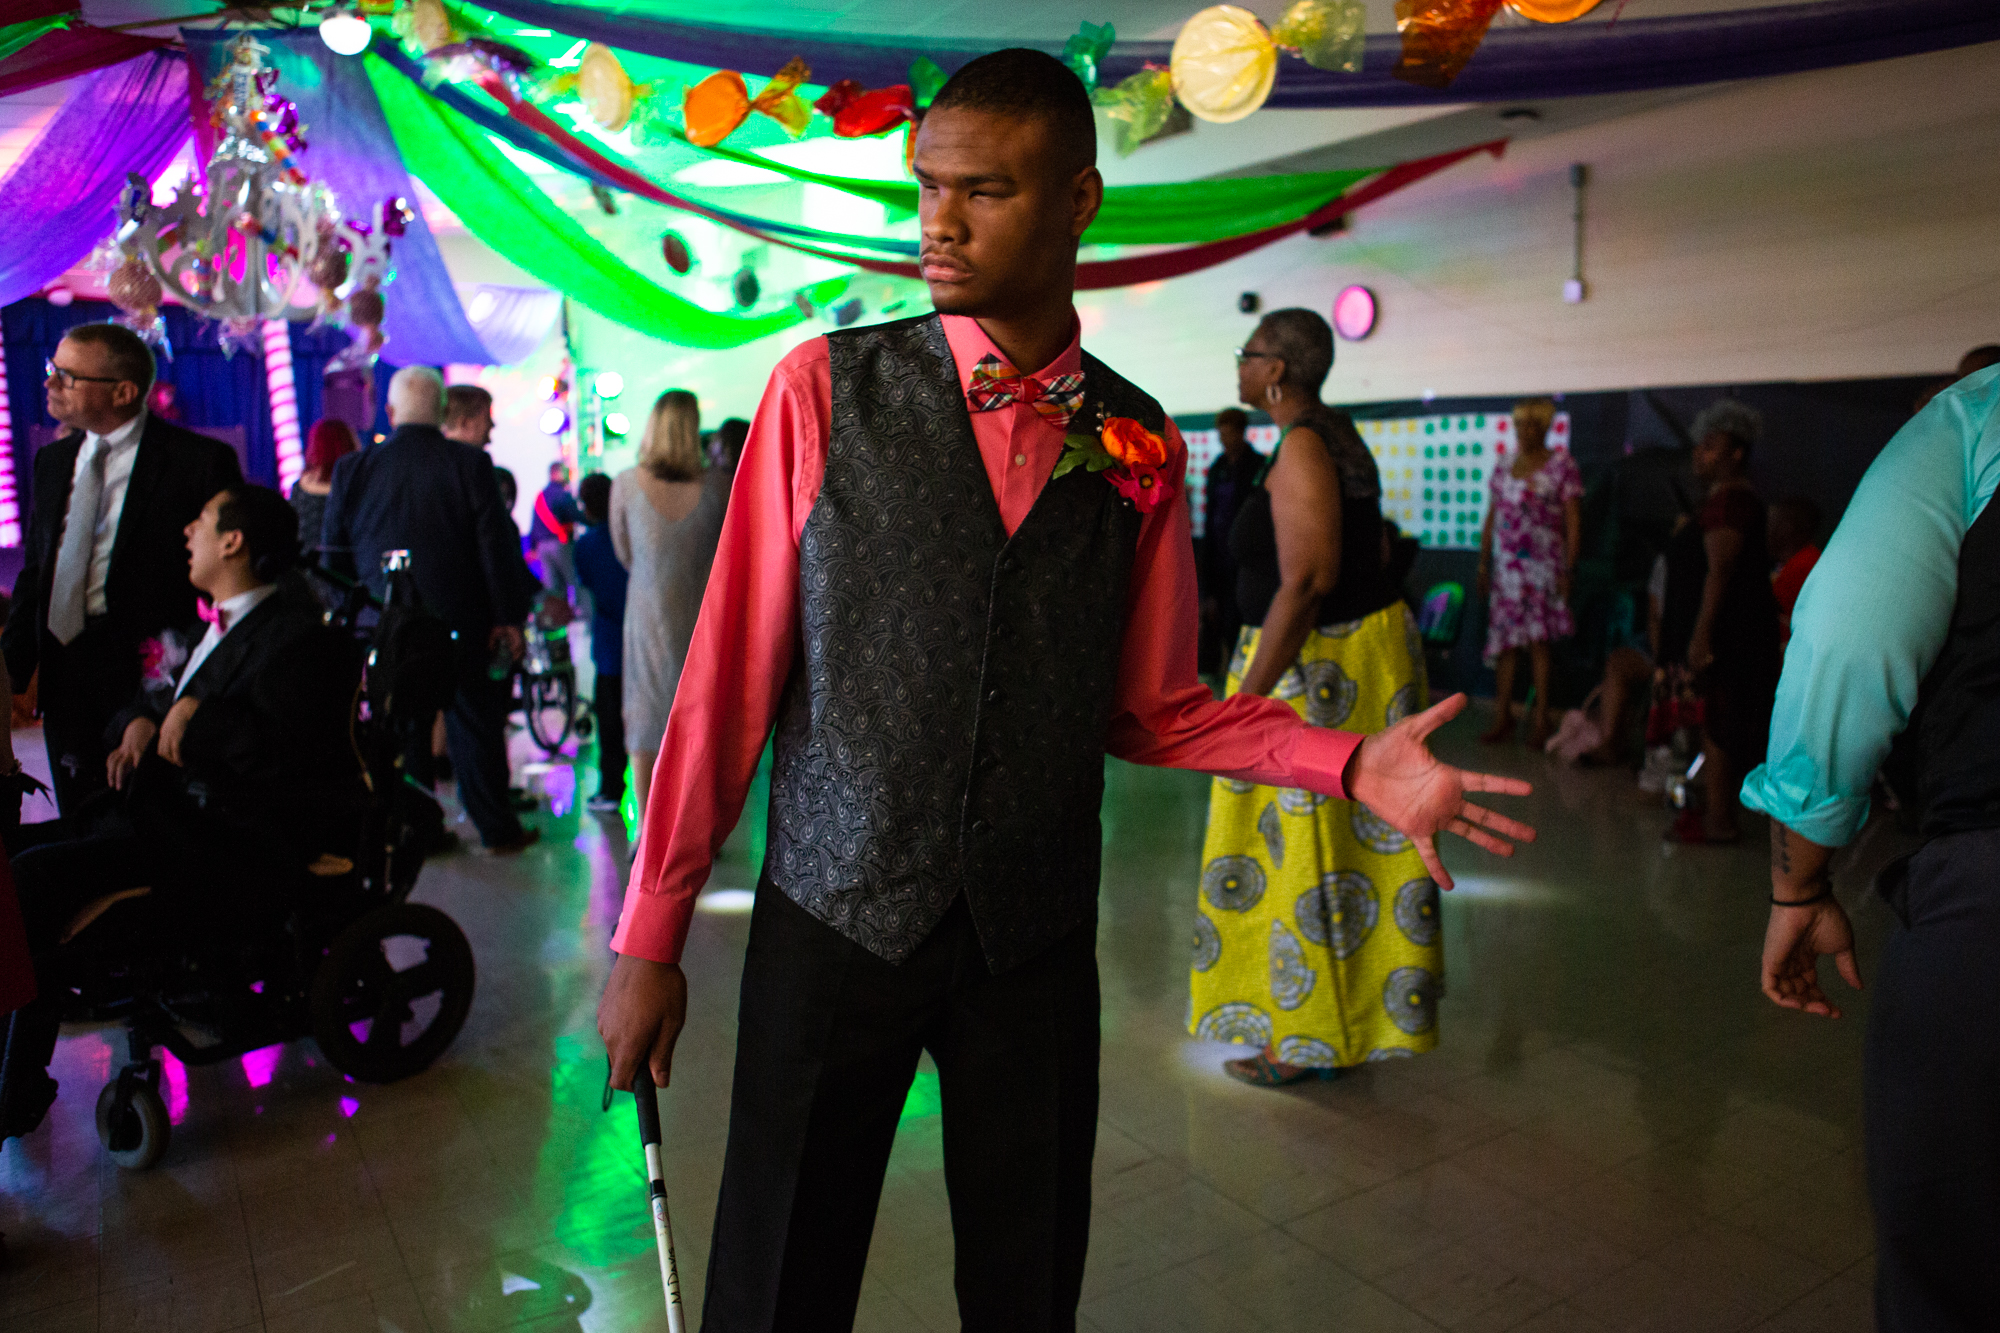 """Matthew enjoys a dance at his school's prom celebration on May 19, 2018. This year's theme was """"Candyland""""."""